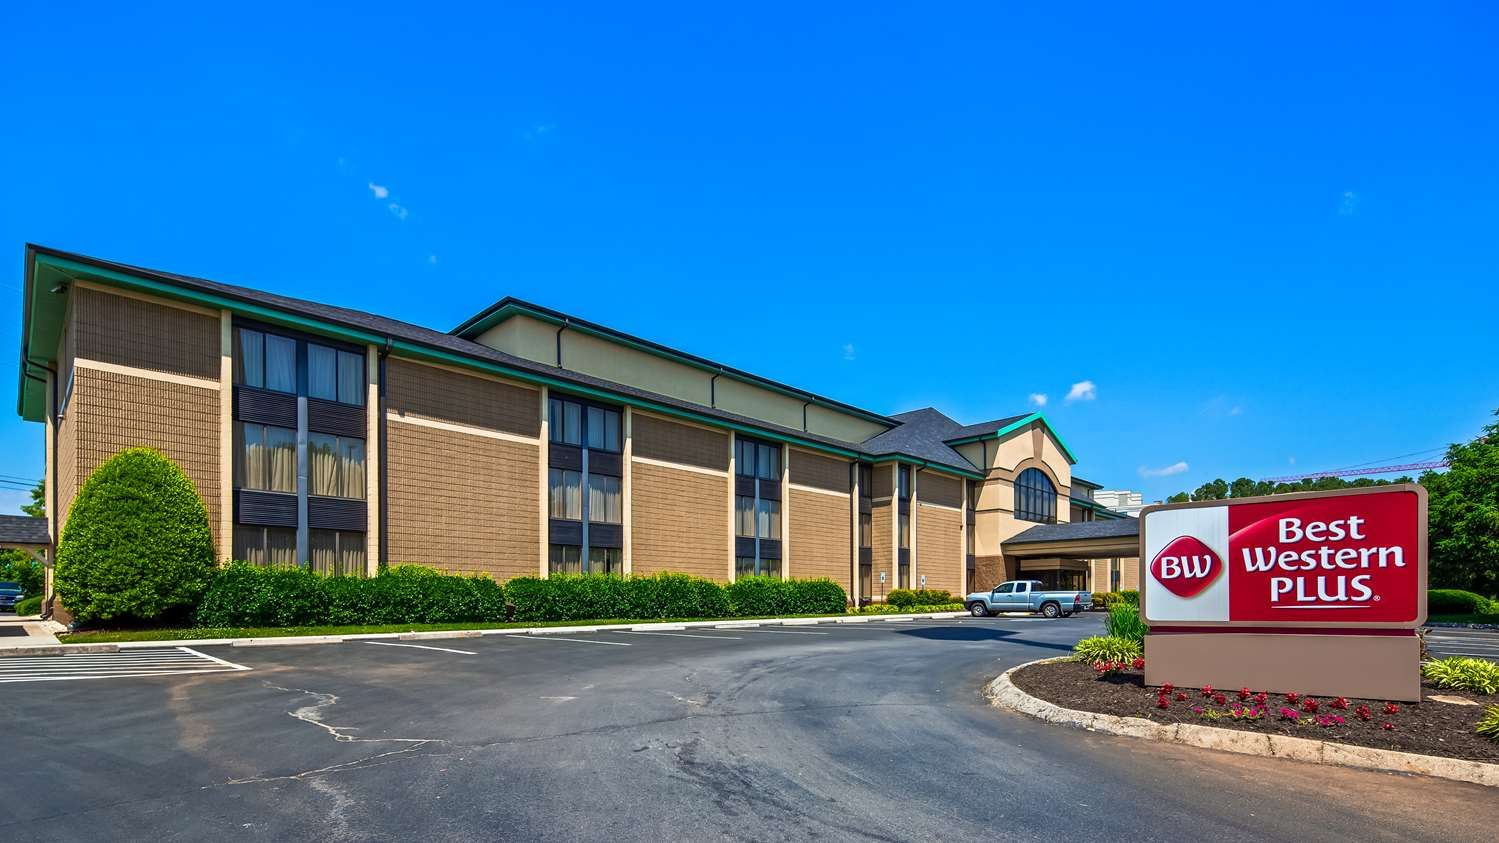 Welcome To Best Western Plus Cedar Bluff Inn Is Located Near I 75 And I 40 East Just Ten Minutes From Downtown Kn Best Western Best Hotel Deals Best Hotels